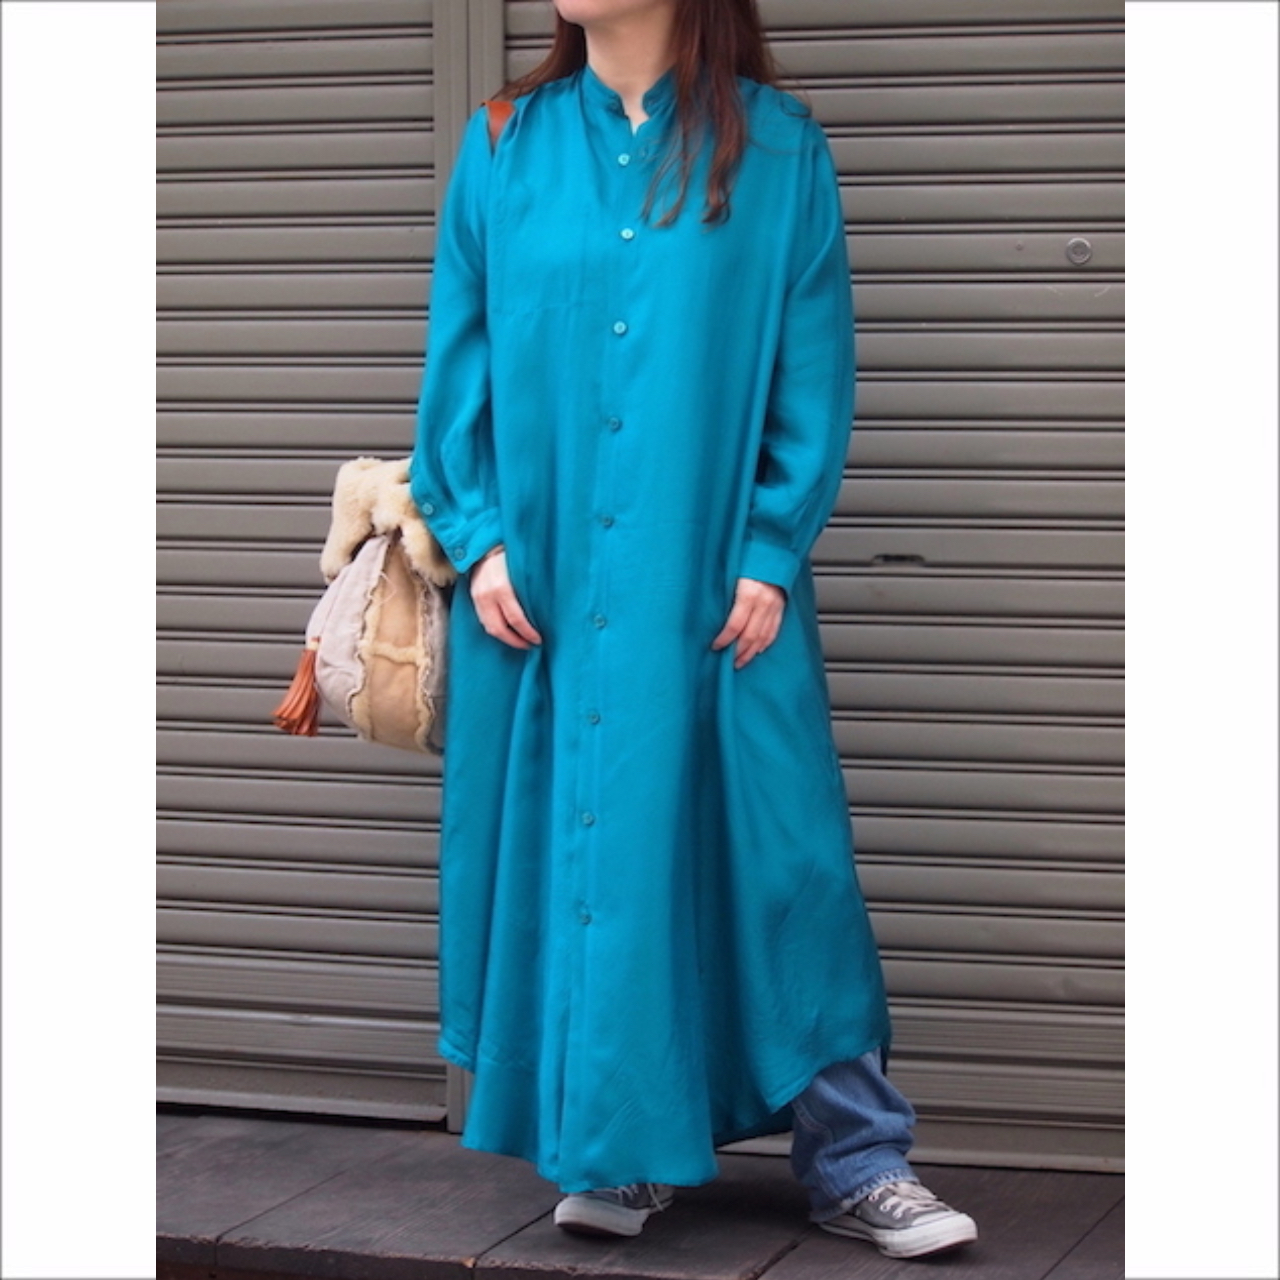 【hippiness】cupro long shirt one-piece/ 【ヒッピネス】キュプラ ロング シャツ ワンピース